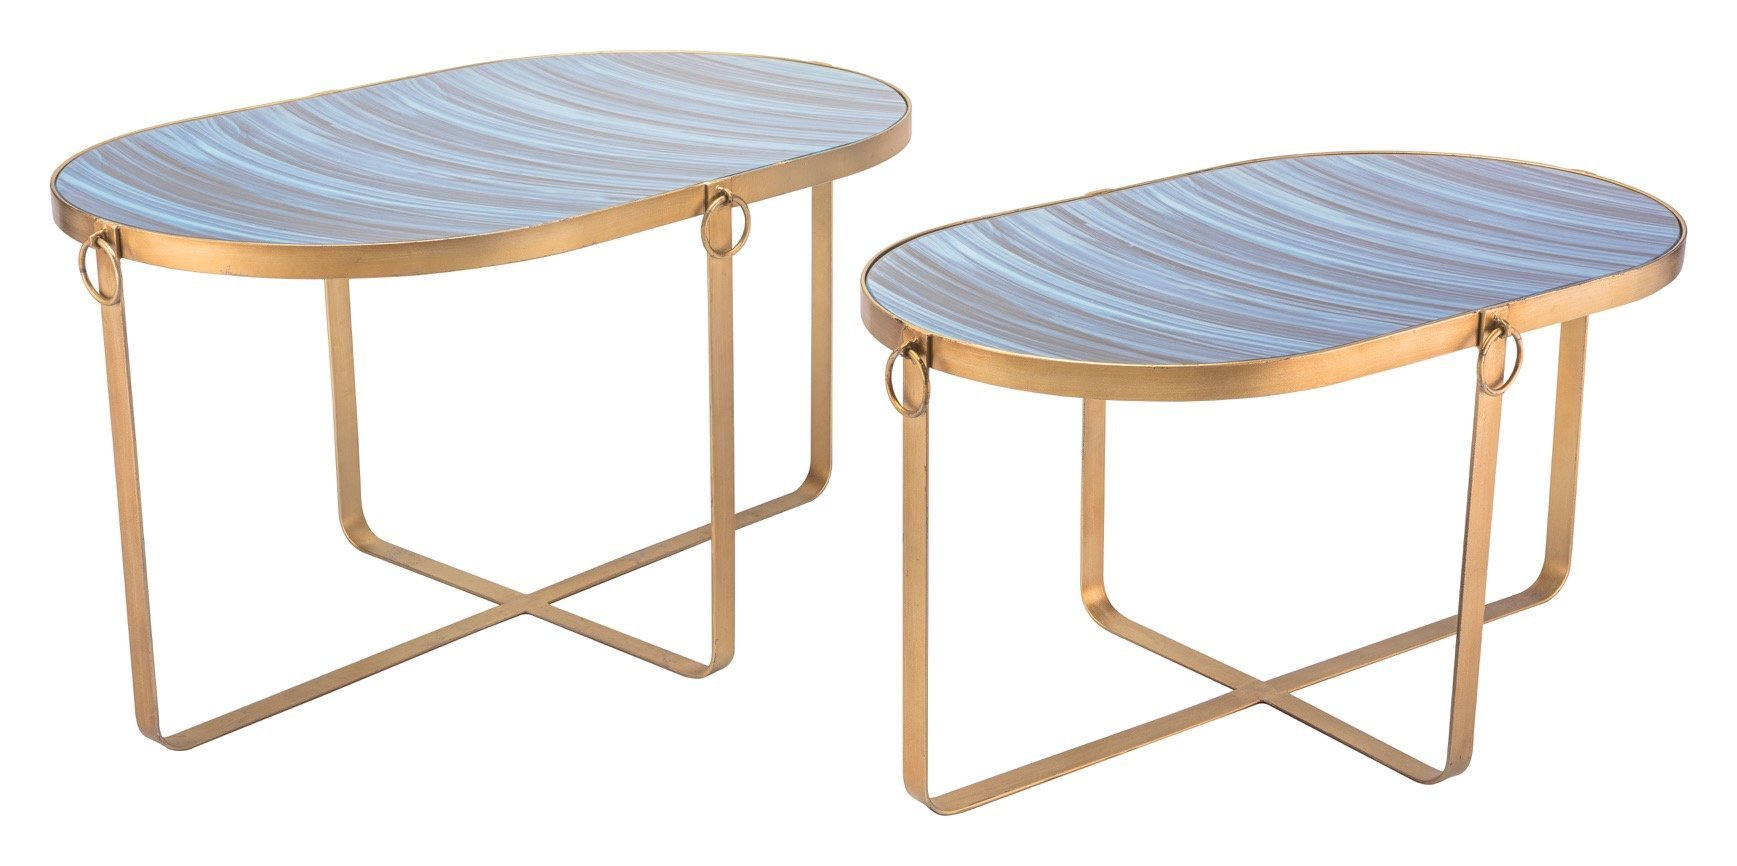 zaphire set accent tables blue antique gold side alan decor table small lamps for bedroom new furniture bronze lamp tray end piece corner bench destination lighting coupon tall